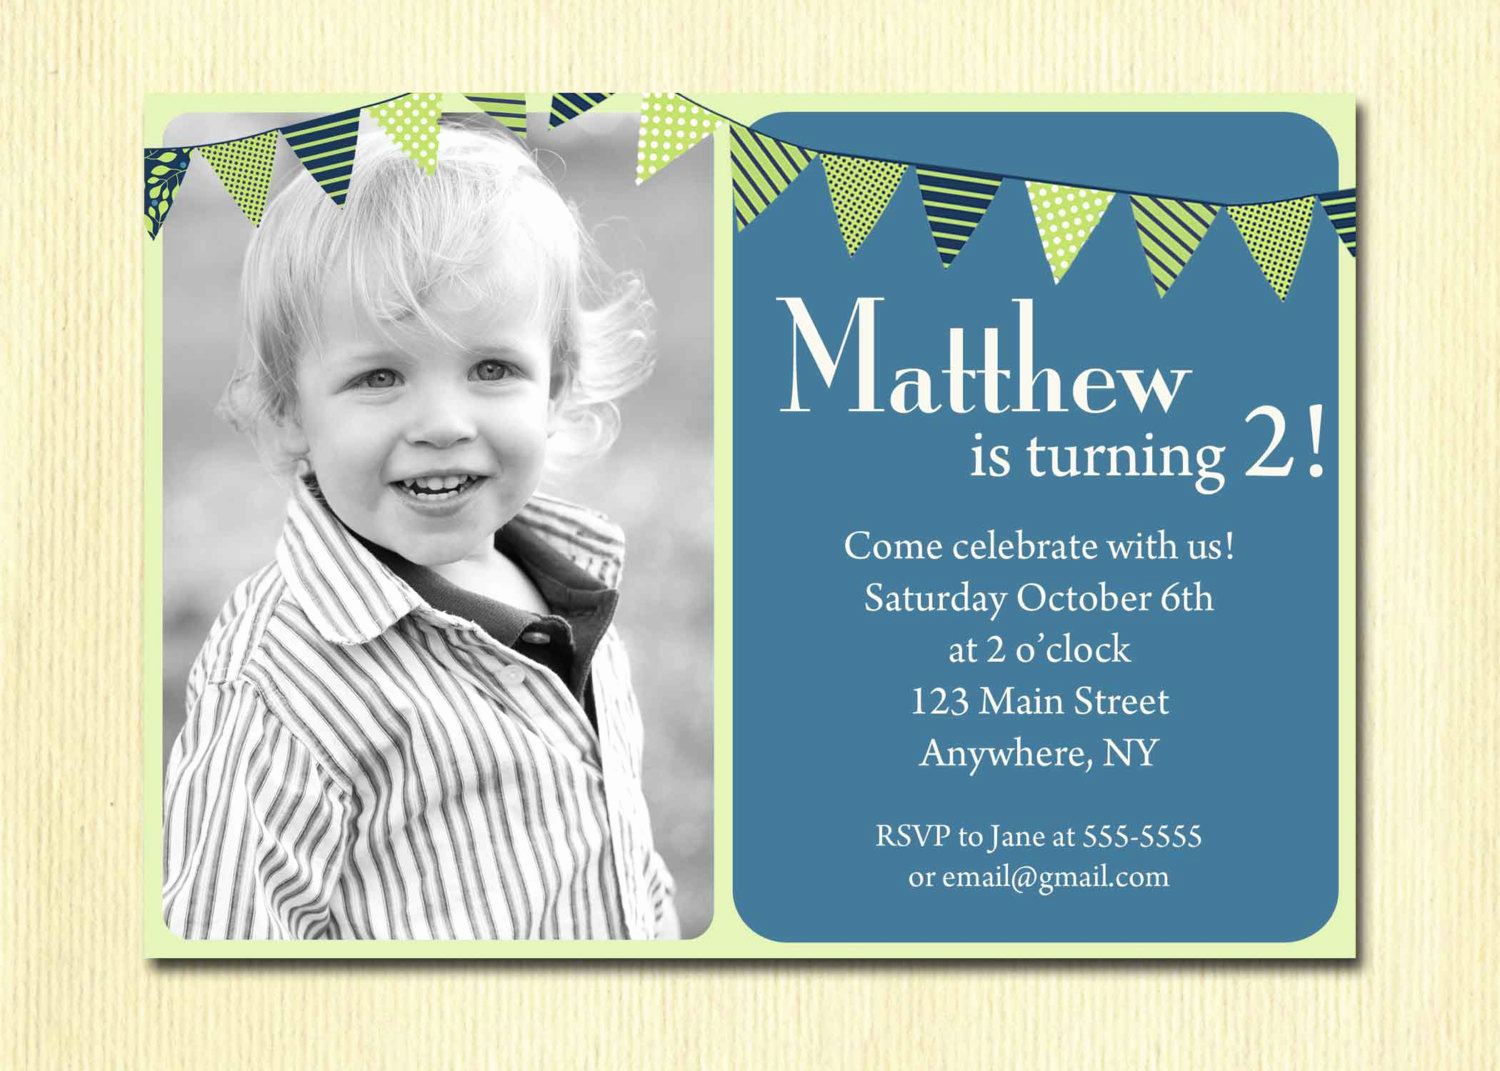 4th Birthday Invitation Wording Inspirational First Birthday Baby Boy Invitation 1st 2nd 3rd 4th Birthday